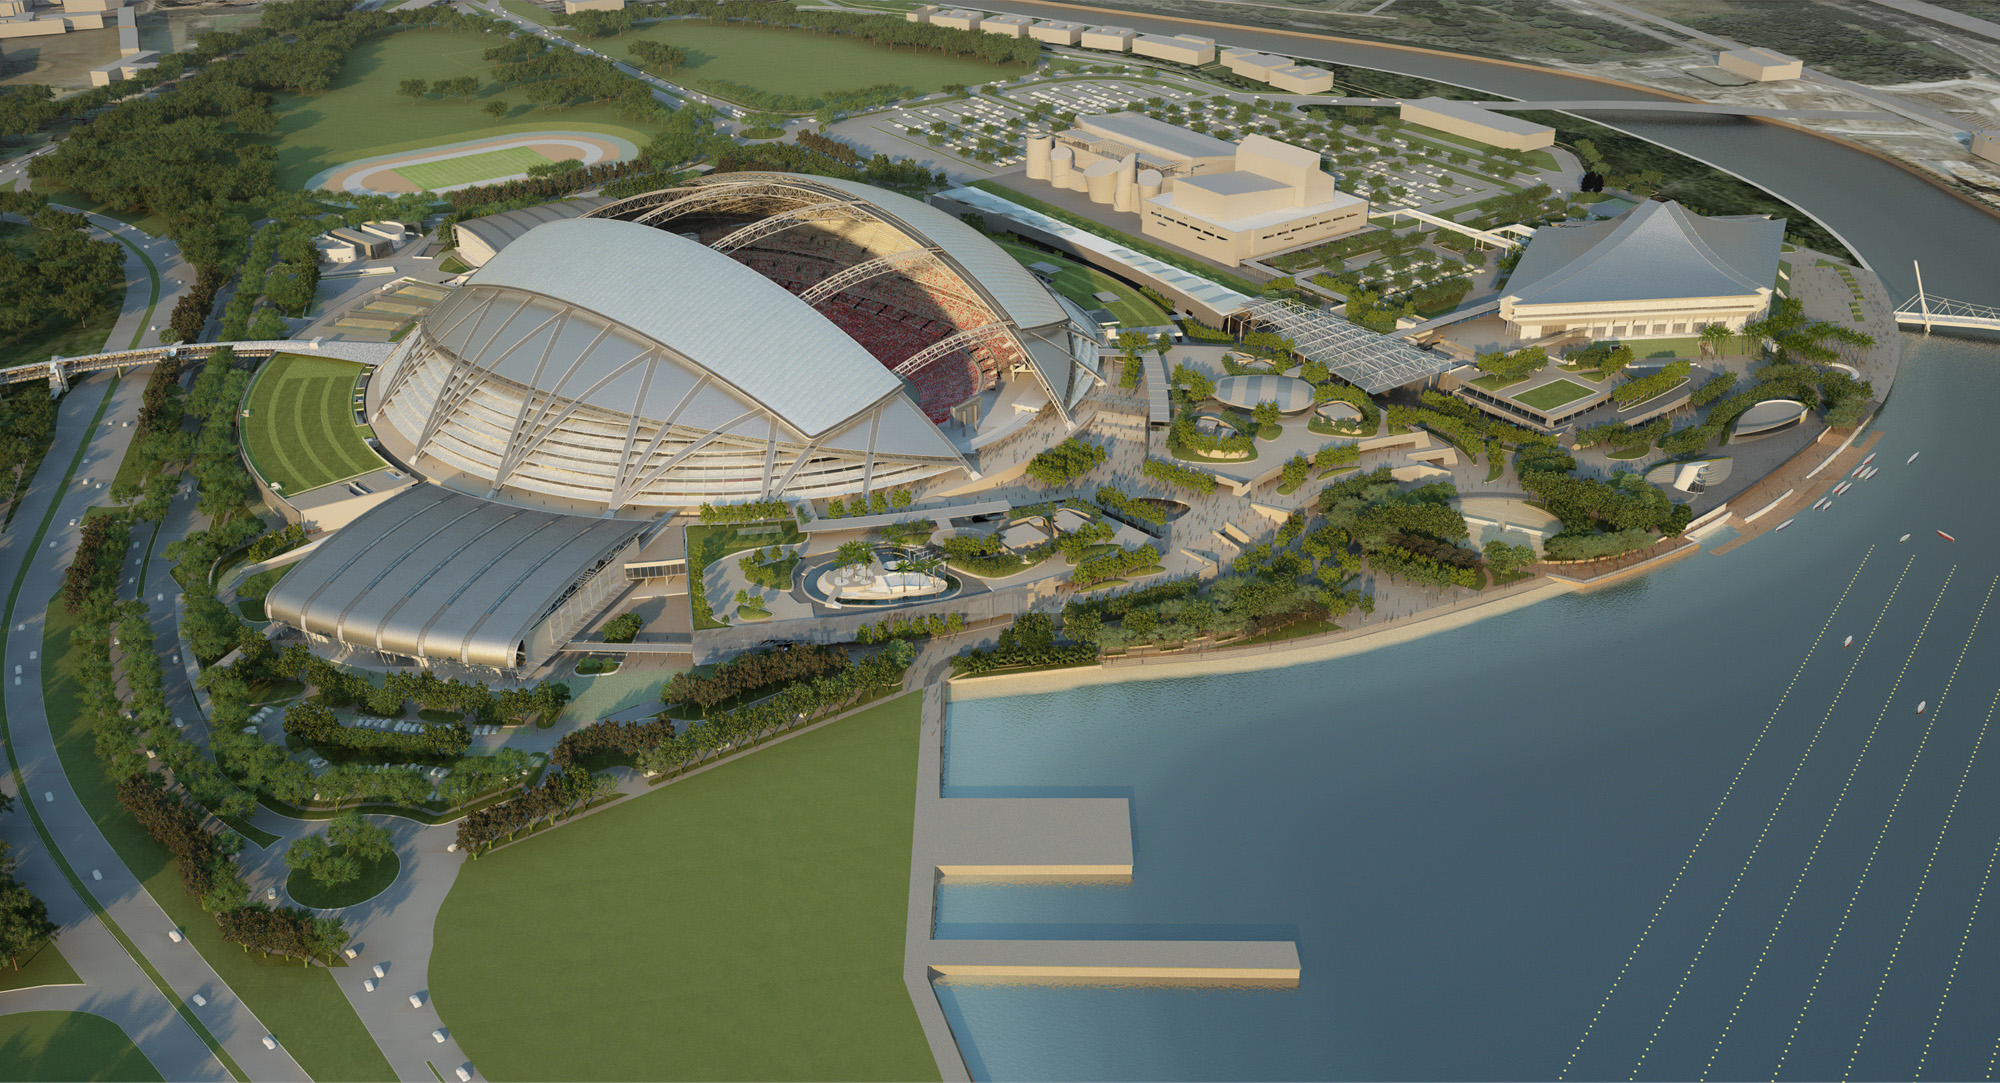 Singapore Sports Hub: the daytime view (Image by Oaker)